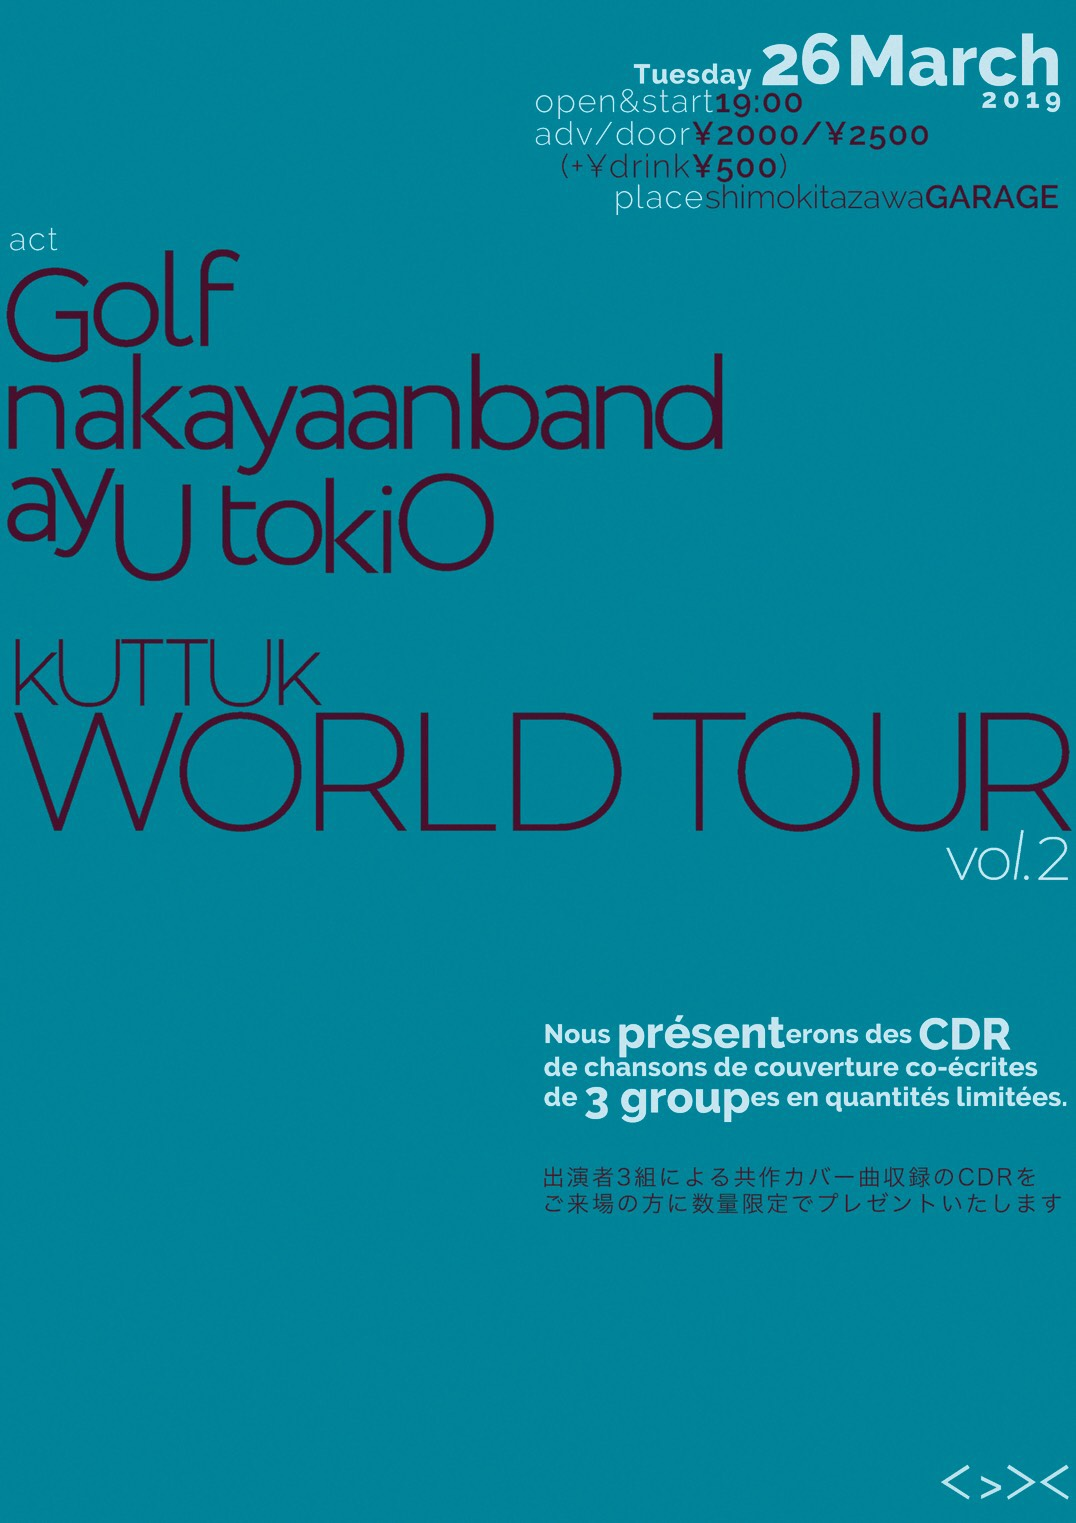 KUTTUK WORLD TOUR vol.2